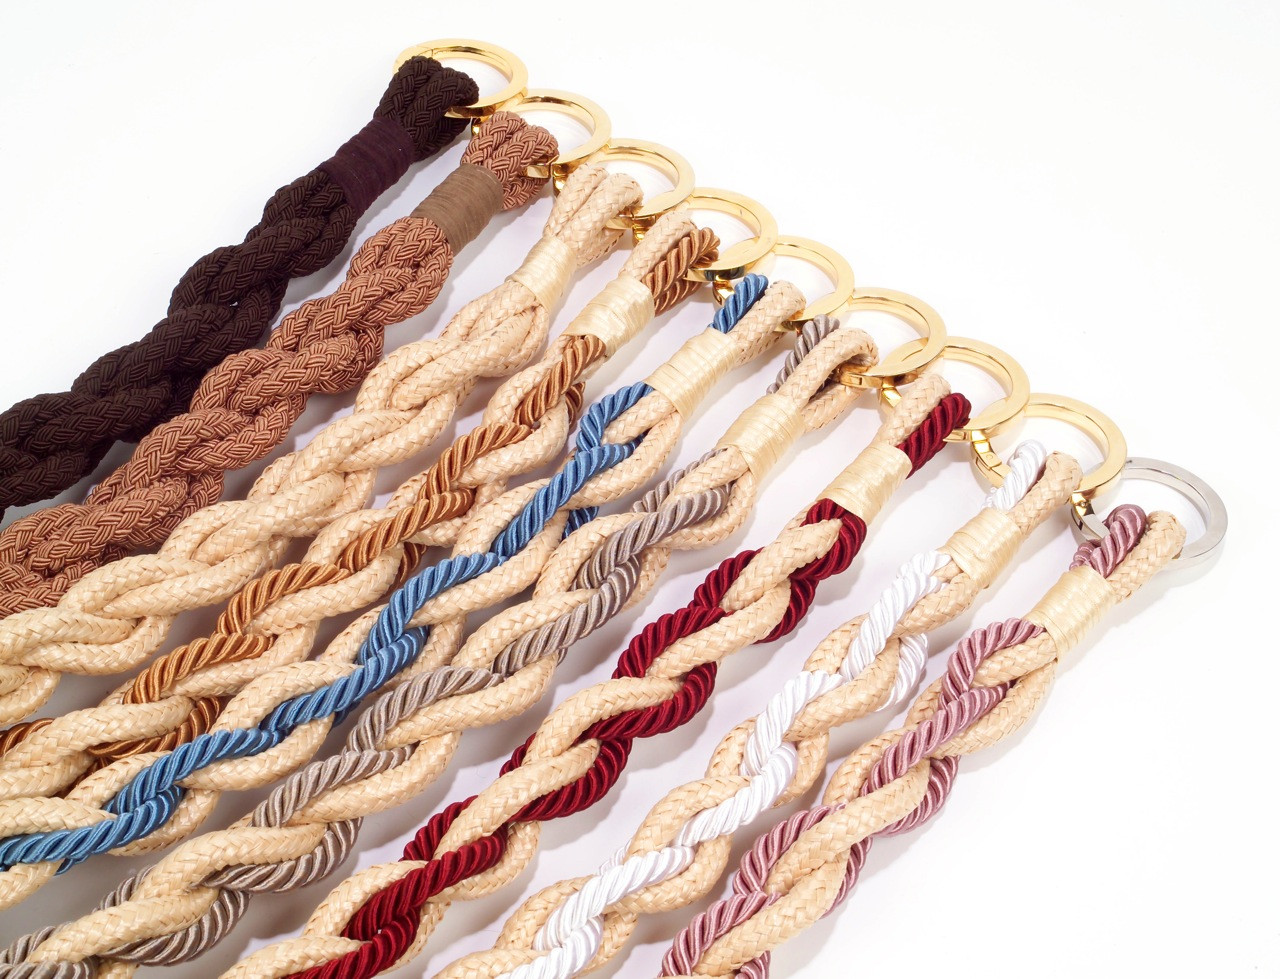 RAFFIA TRICOT CORD TIE-BANDS IN ASSORTED COLOURWAYS